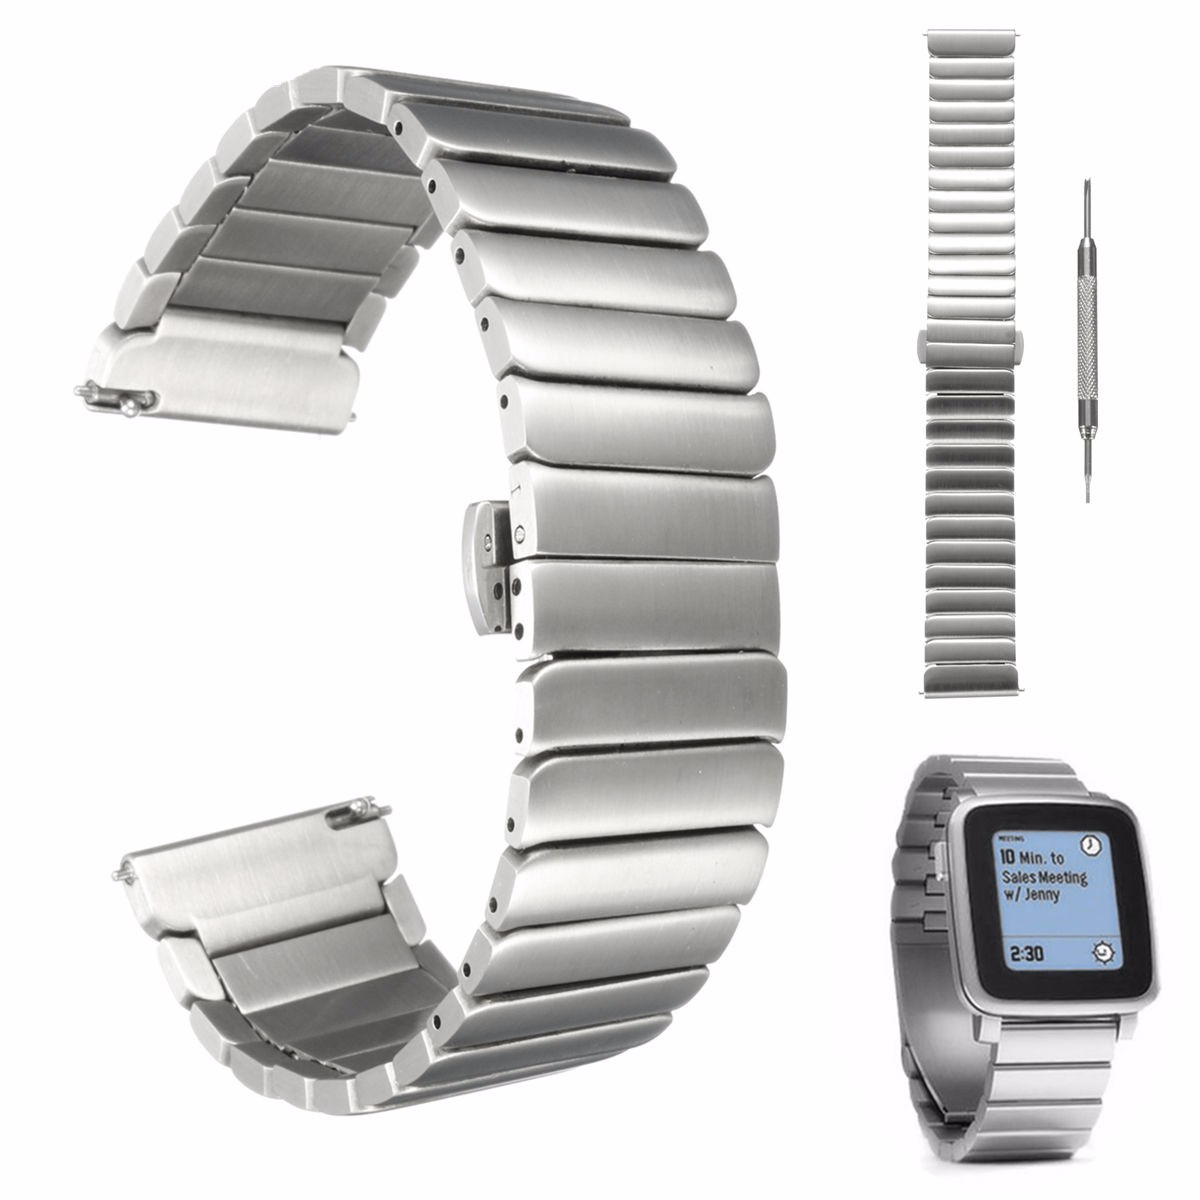 все цены на 22mm 166mm Brand New For Pebble Time Steel Strap Stainless Steel Wrist Watch Bands Watchband Wriststrap Bracelet Butterfly Clasp онлайн